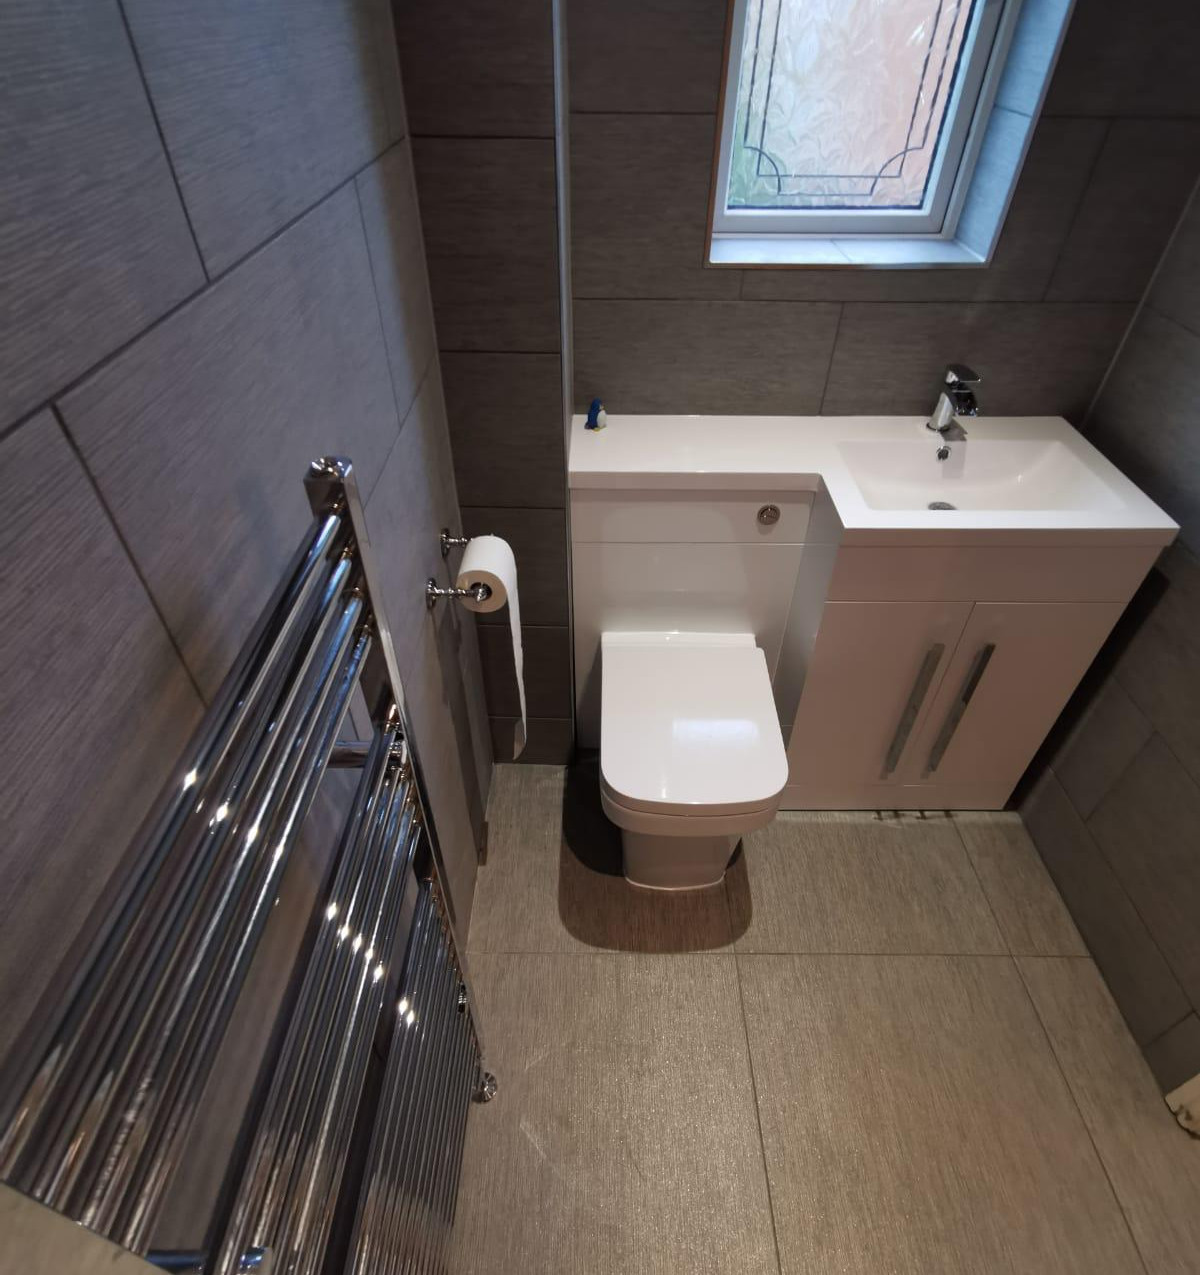 Worksop Bathroom Design 2.